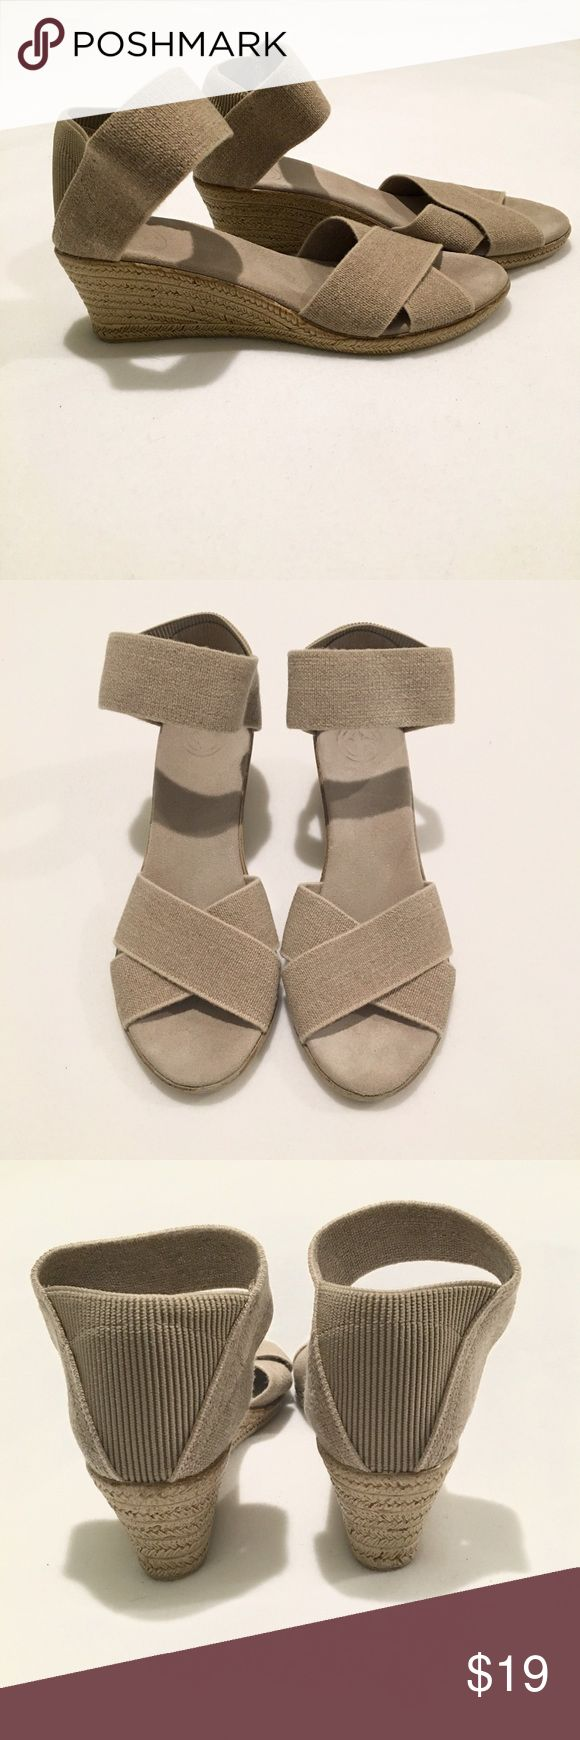 Beige Espadrille Wedge Sandals Beige wedge espadrille sandals.  Size 8.   Great used condition - some wear on soles but otherwise excellent condition! Shoes Wedges